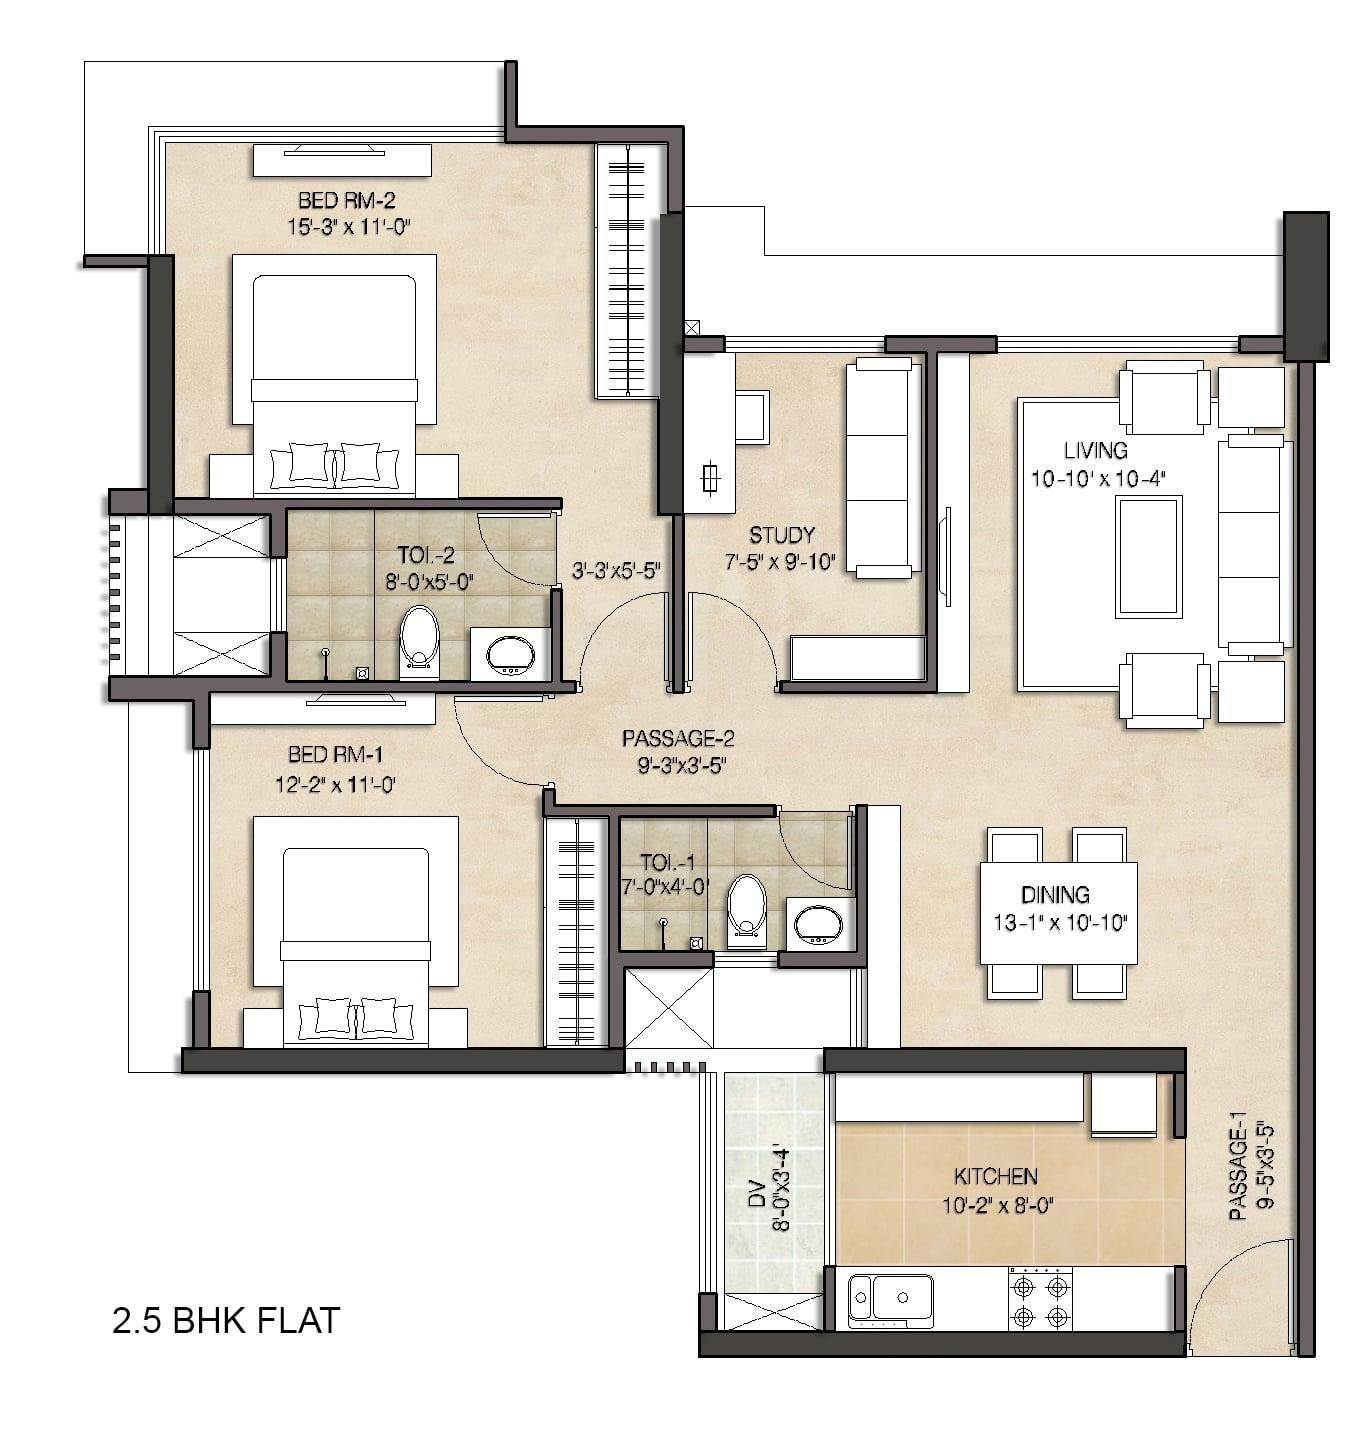 Floor Plans Of Anmol Fortune Apartment Floor Plans House Plans Floor Plans